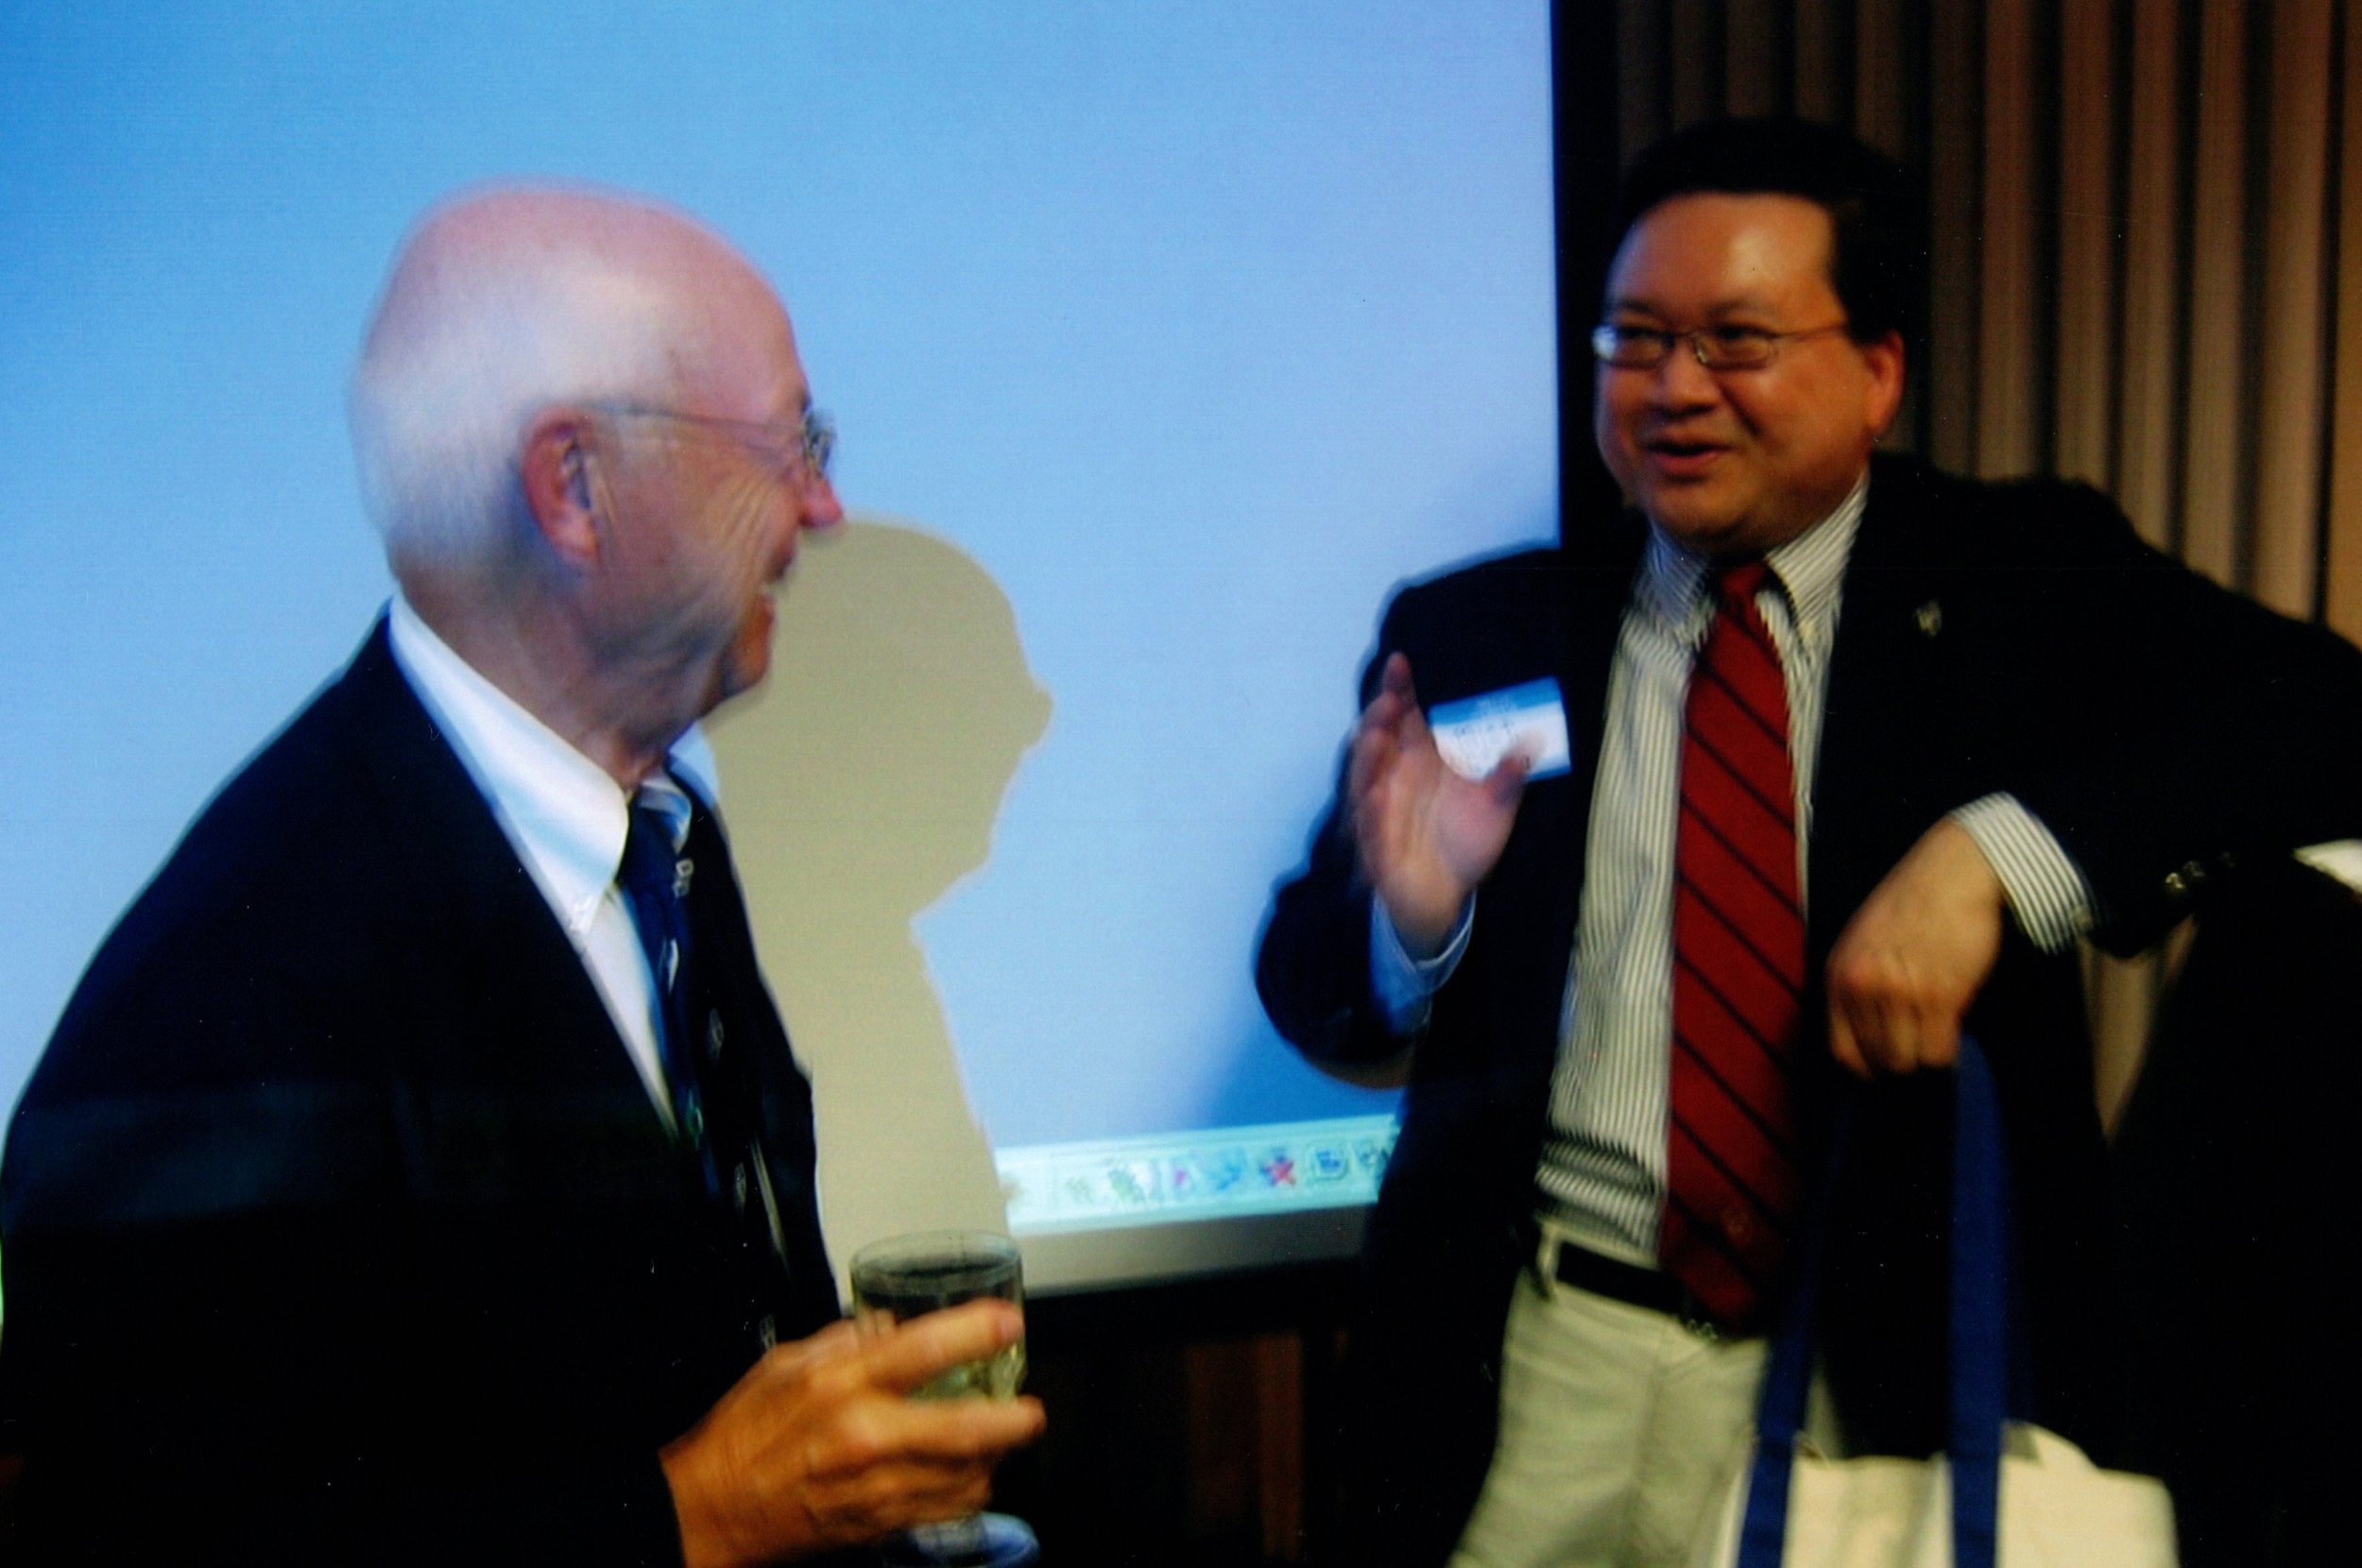 3_29_2007 - YALE CLUB LECTURE - PROF. MINH LUONG 15.jpg